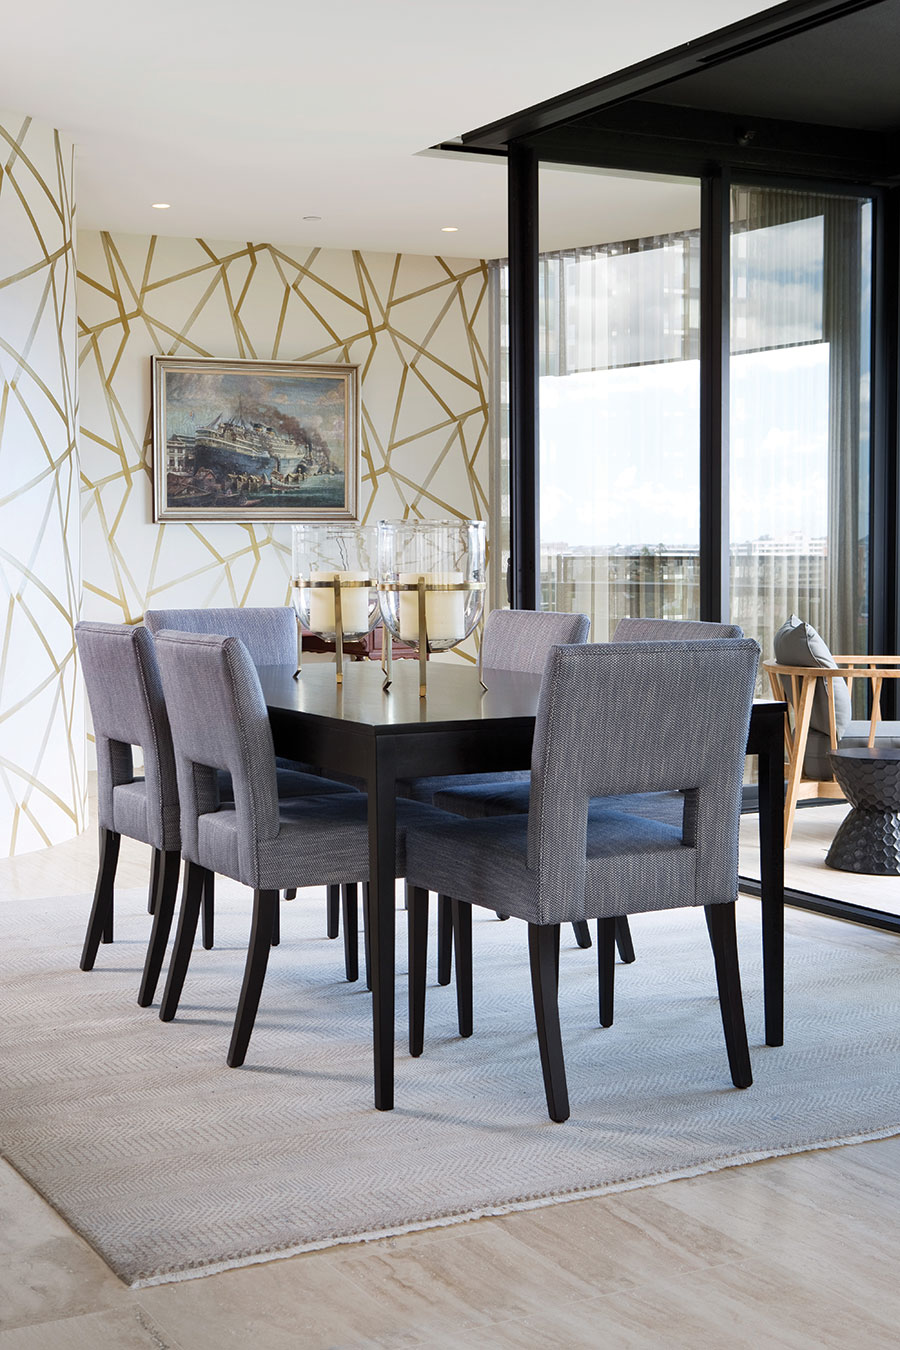 Queensland hoems Palm Interiors apartment dining